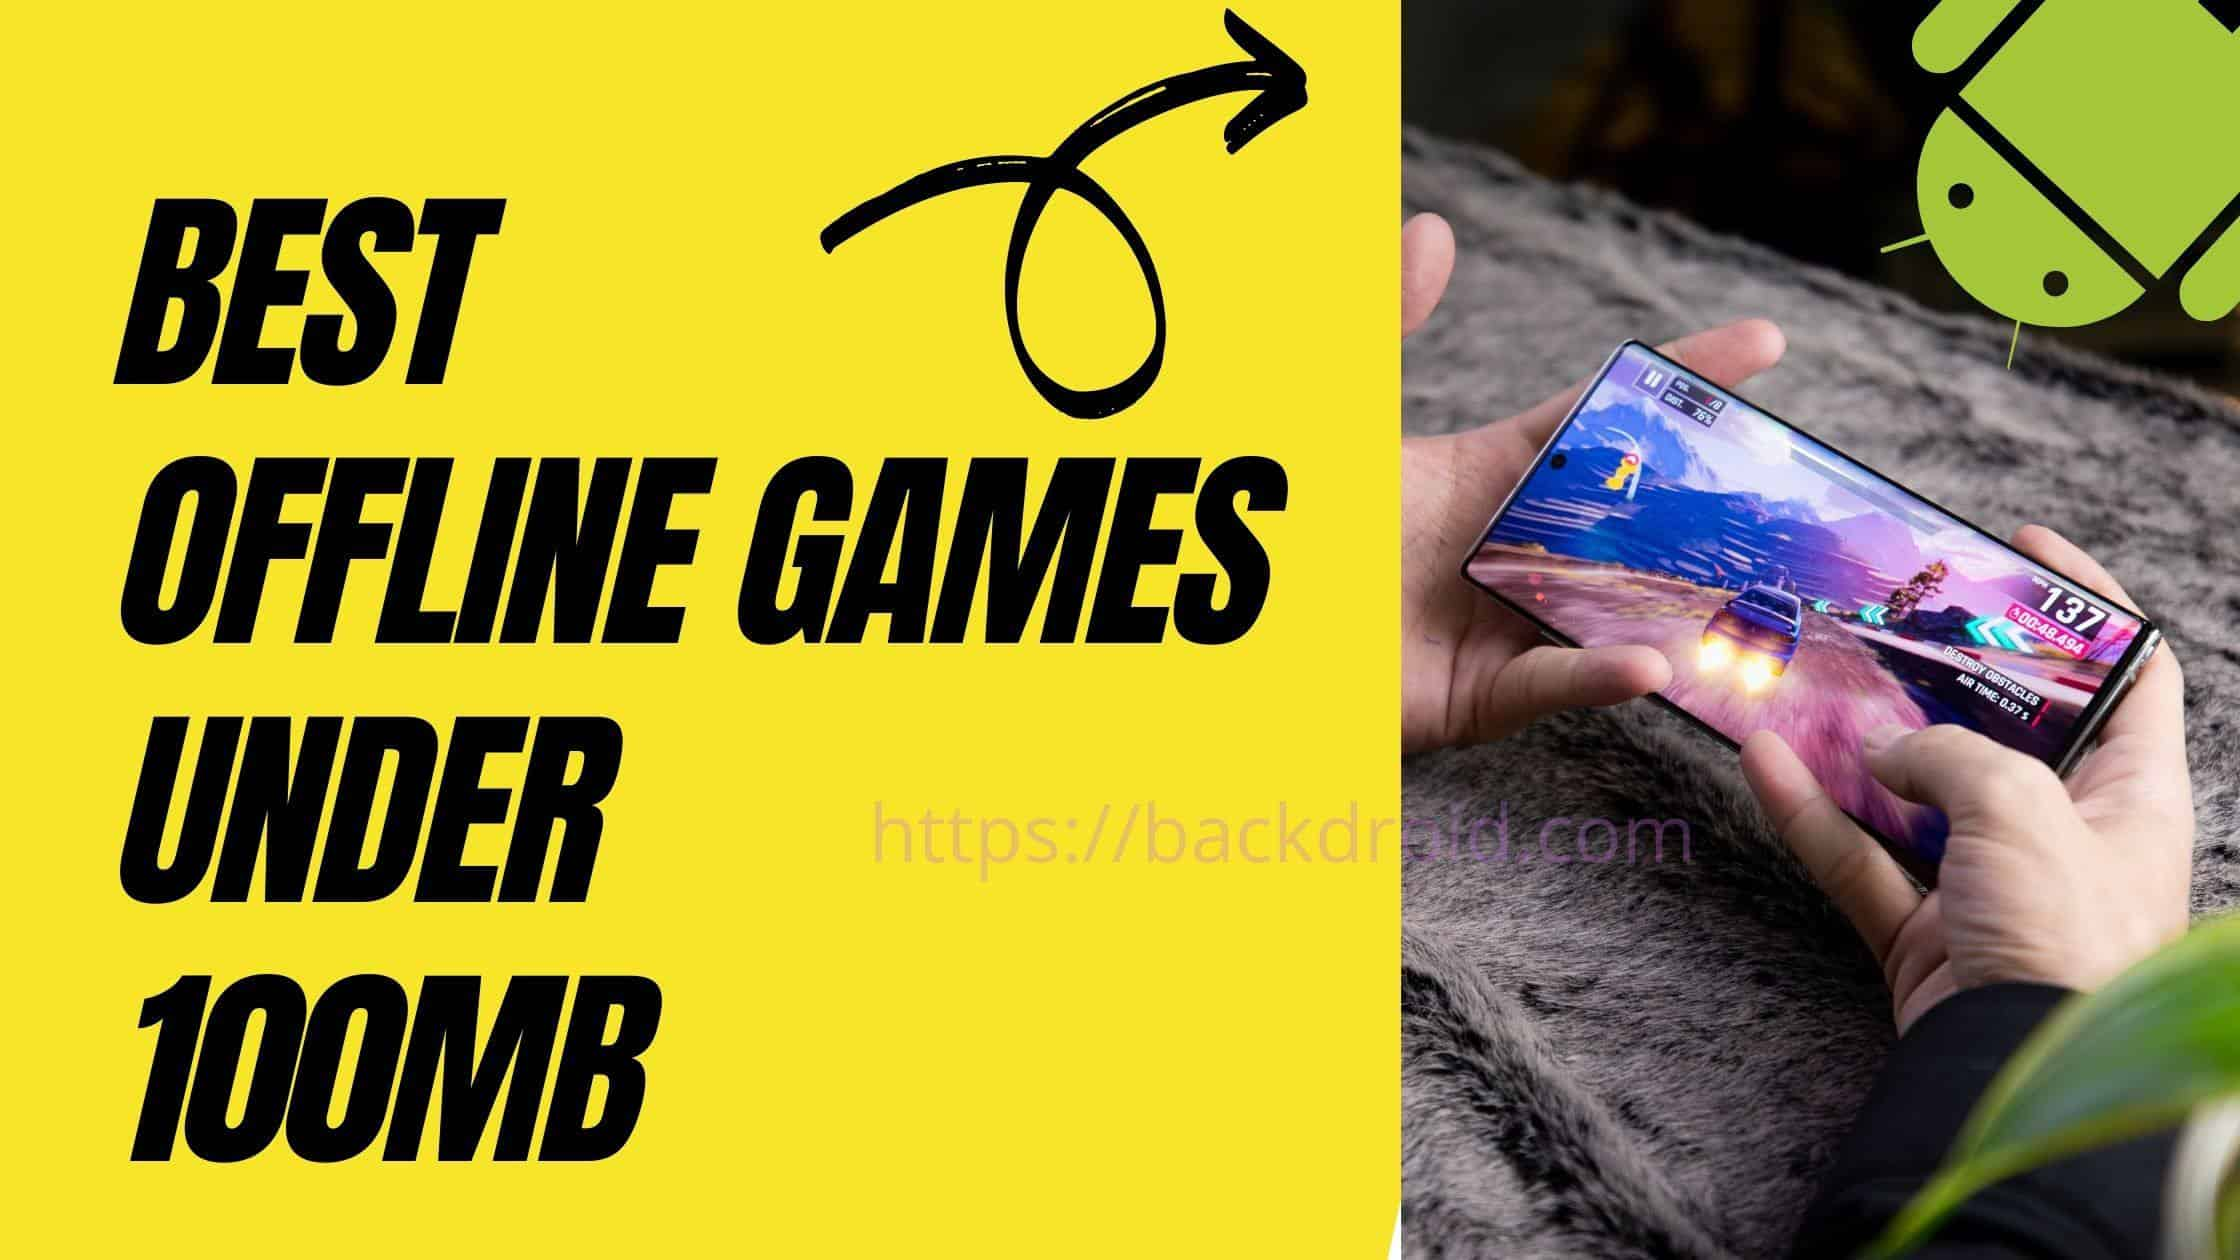 Best Offline games for Android under 100mb